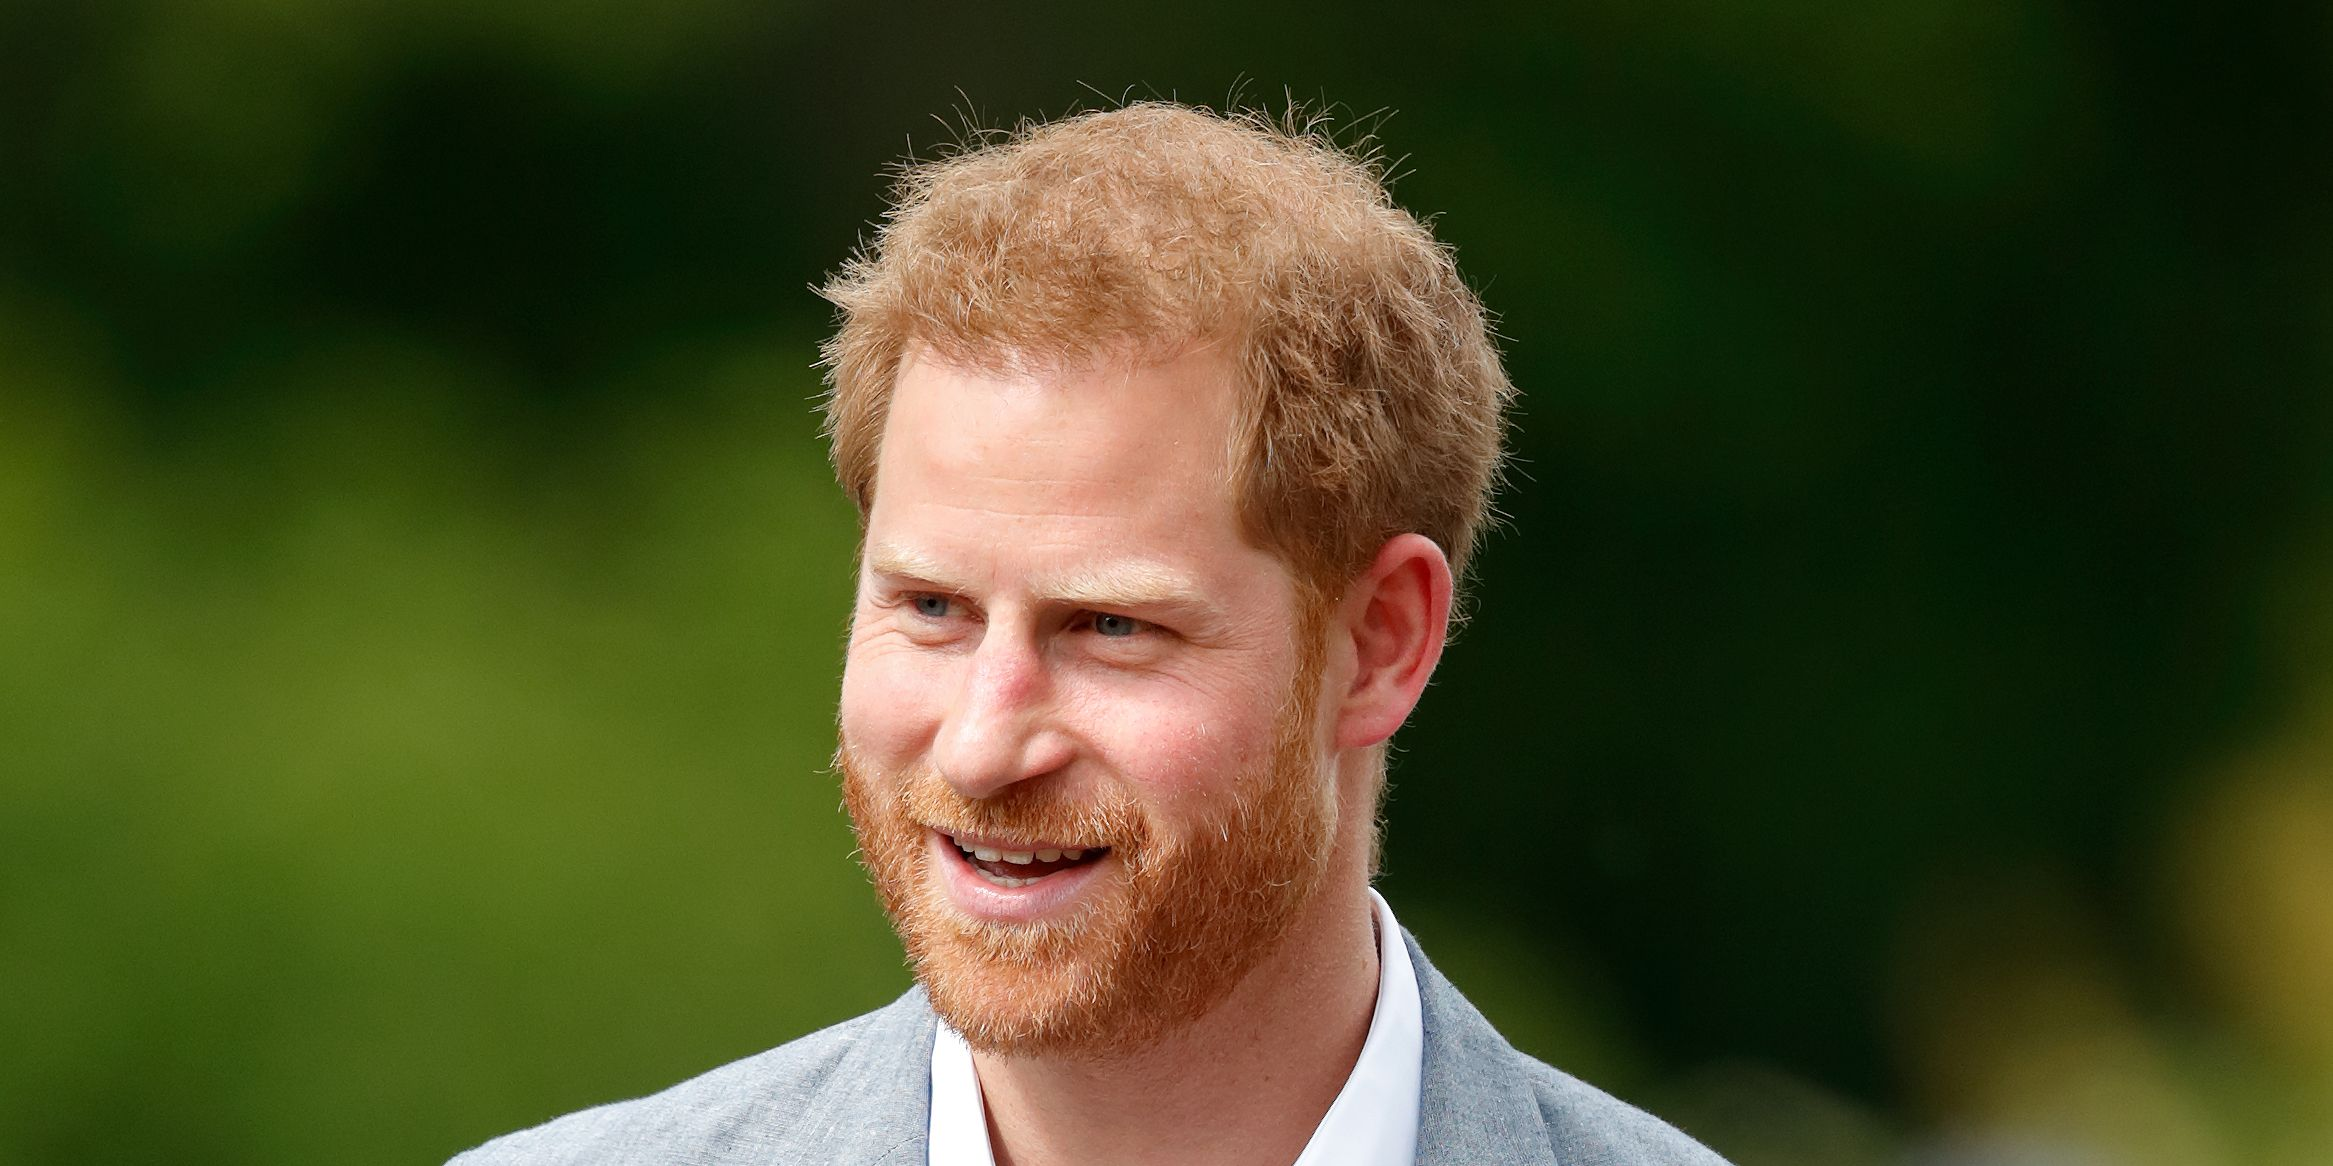 Prince Harry definitely hinted that his baby would be called Archie months ago